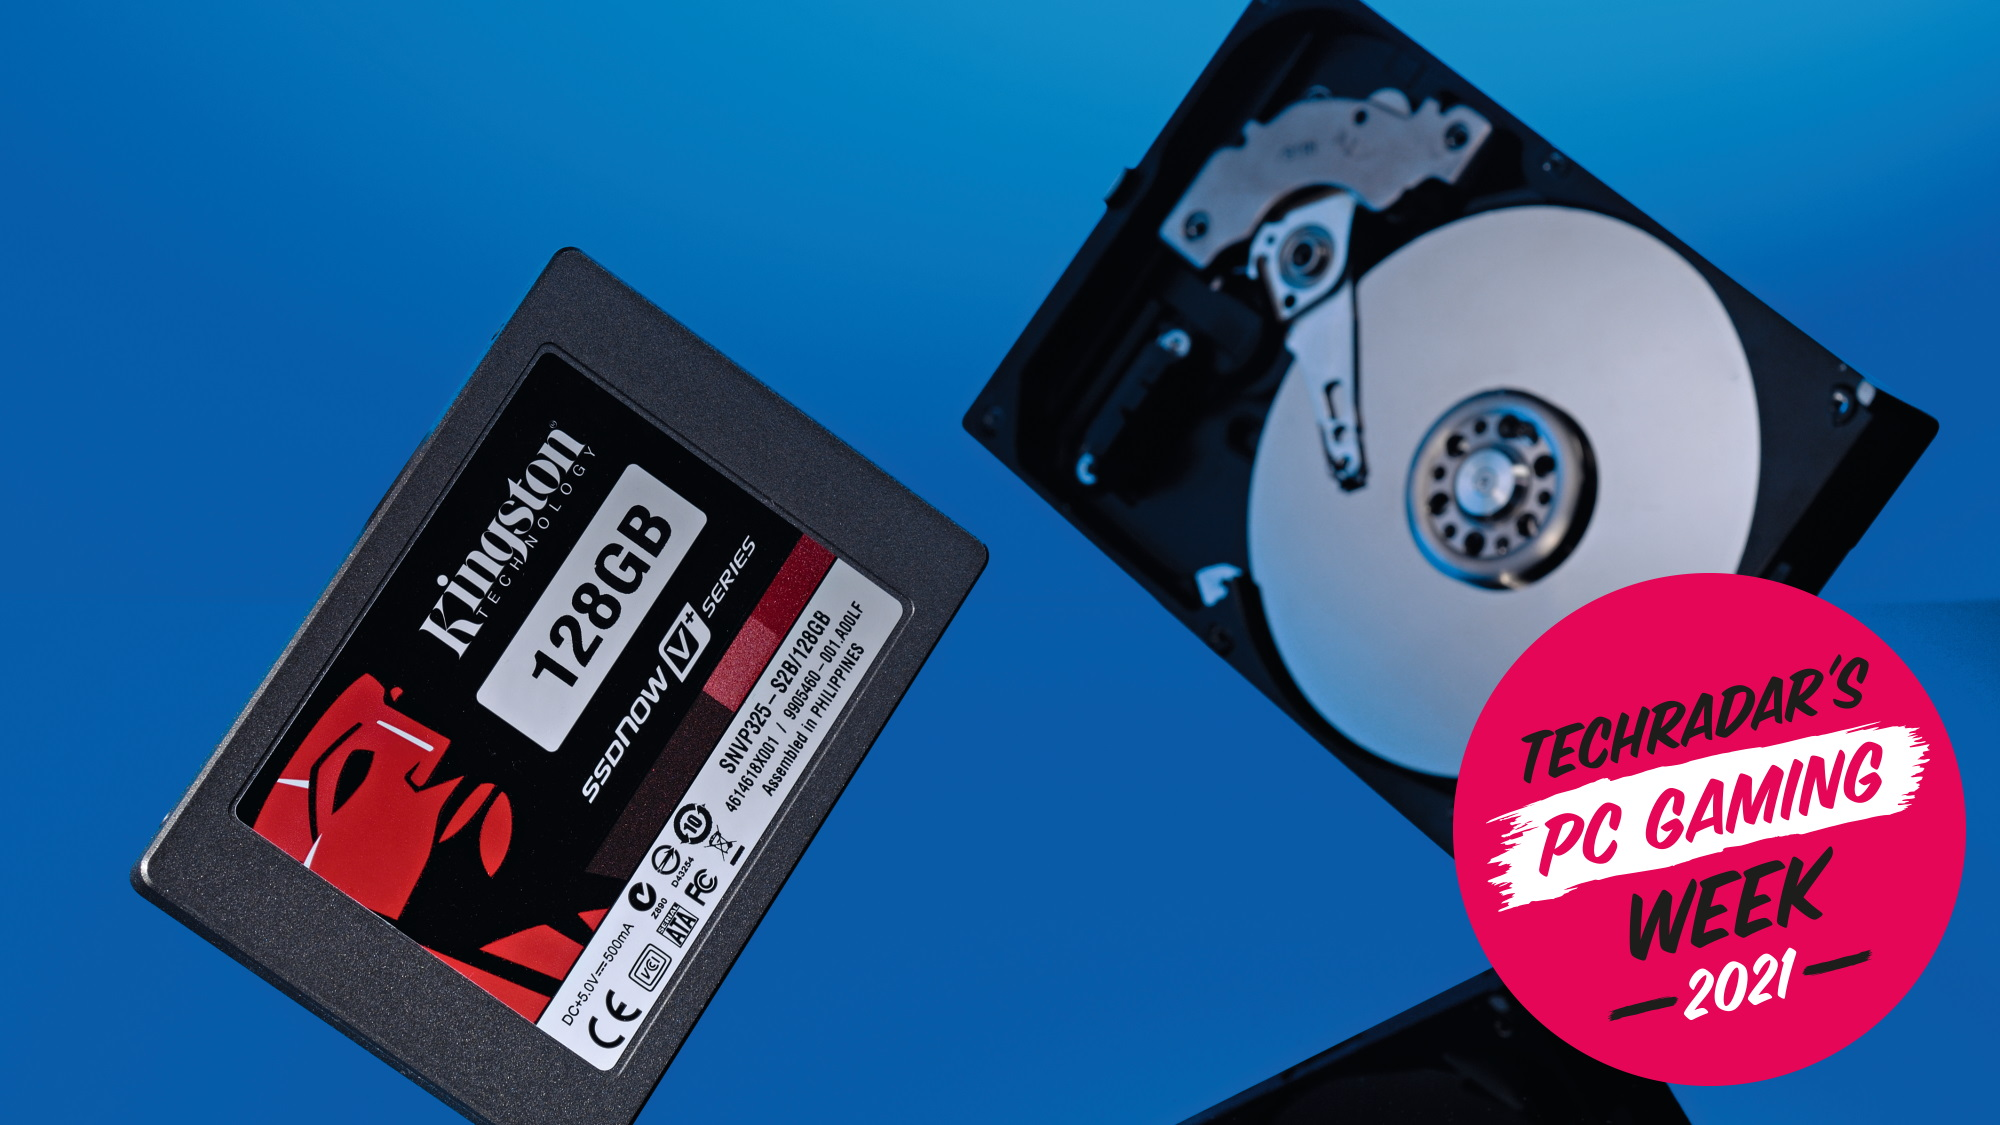 An image of an SSD and hard drive